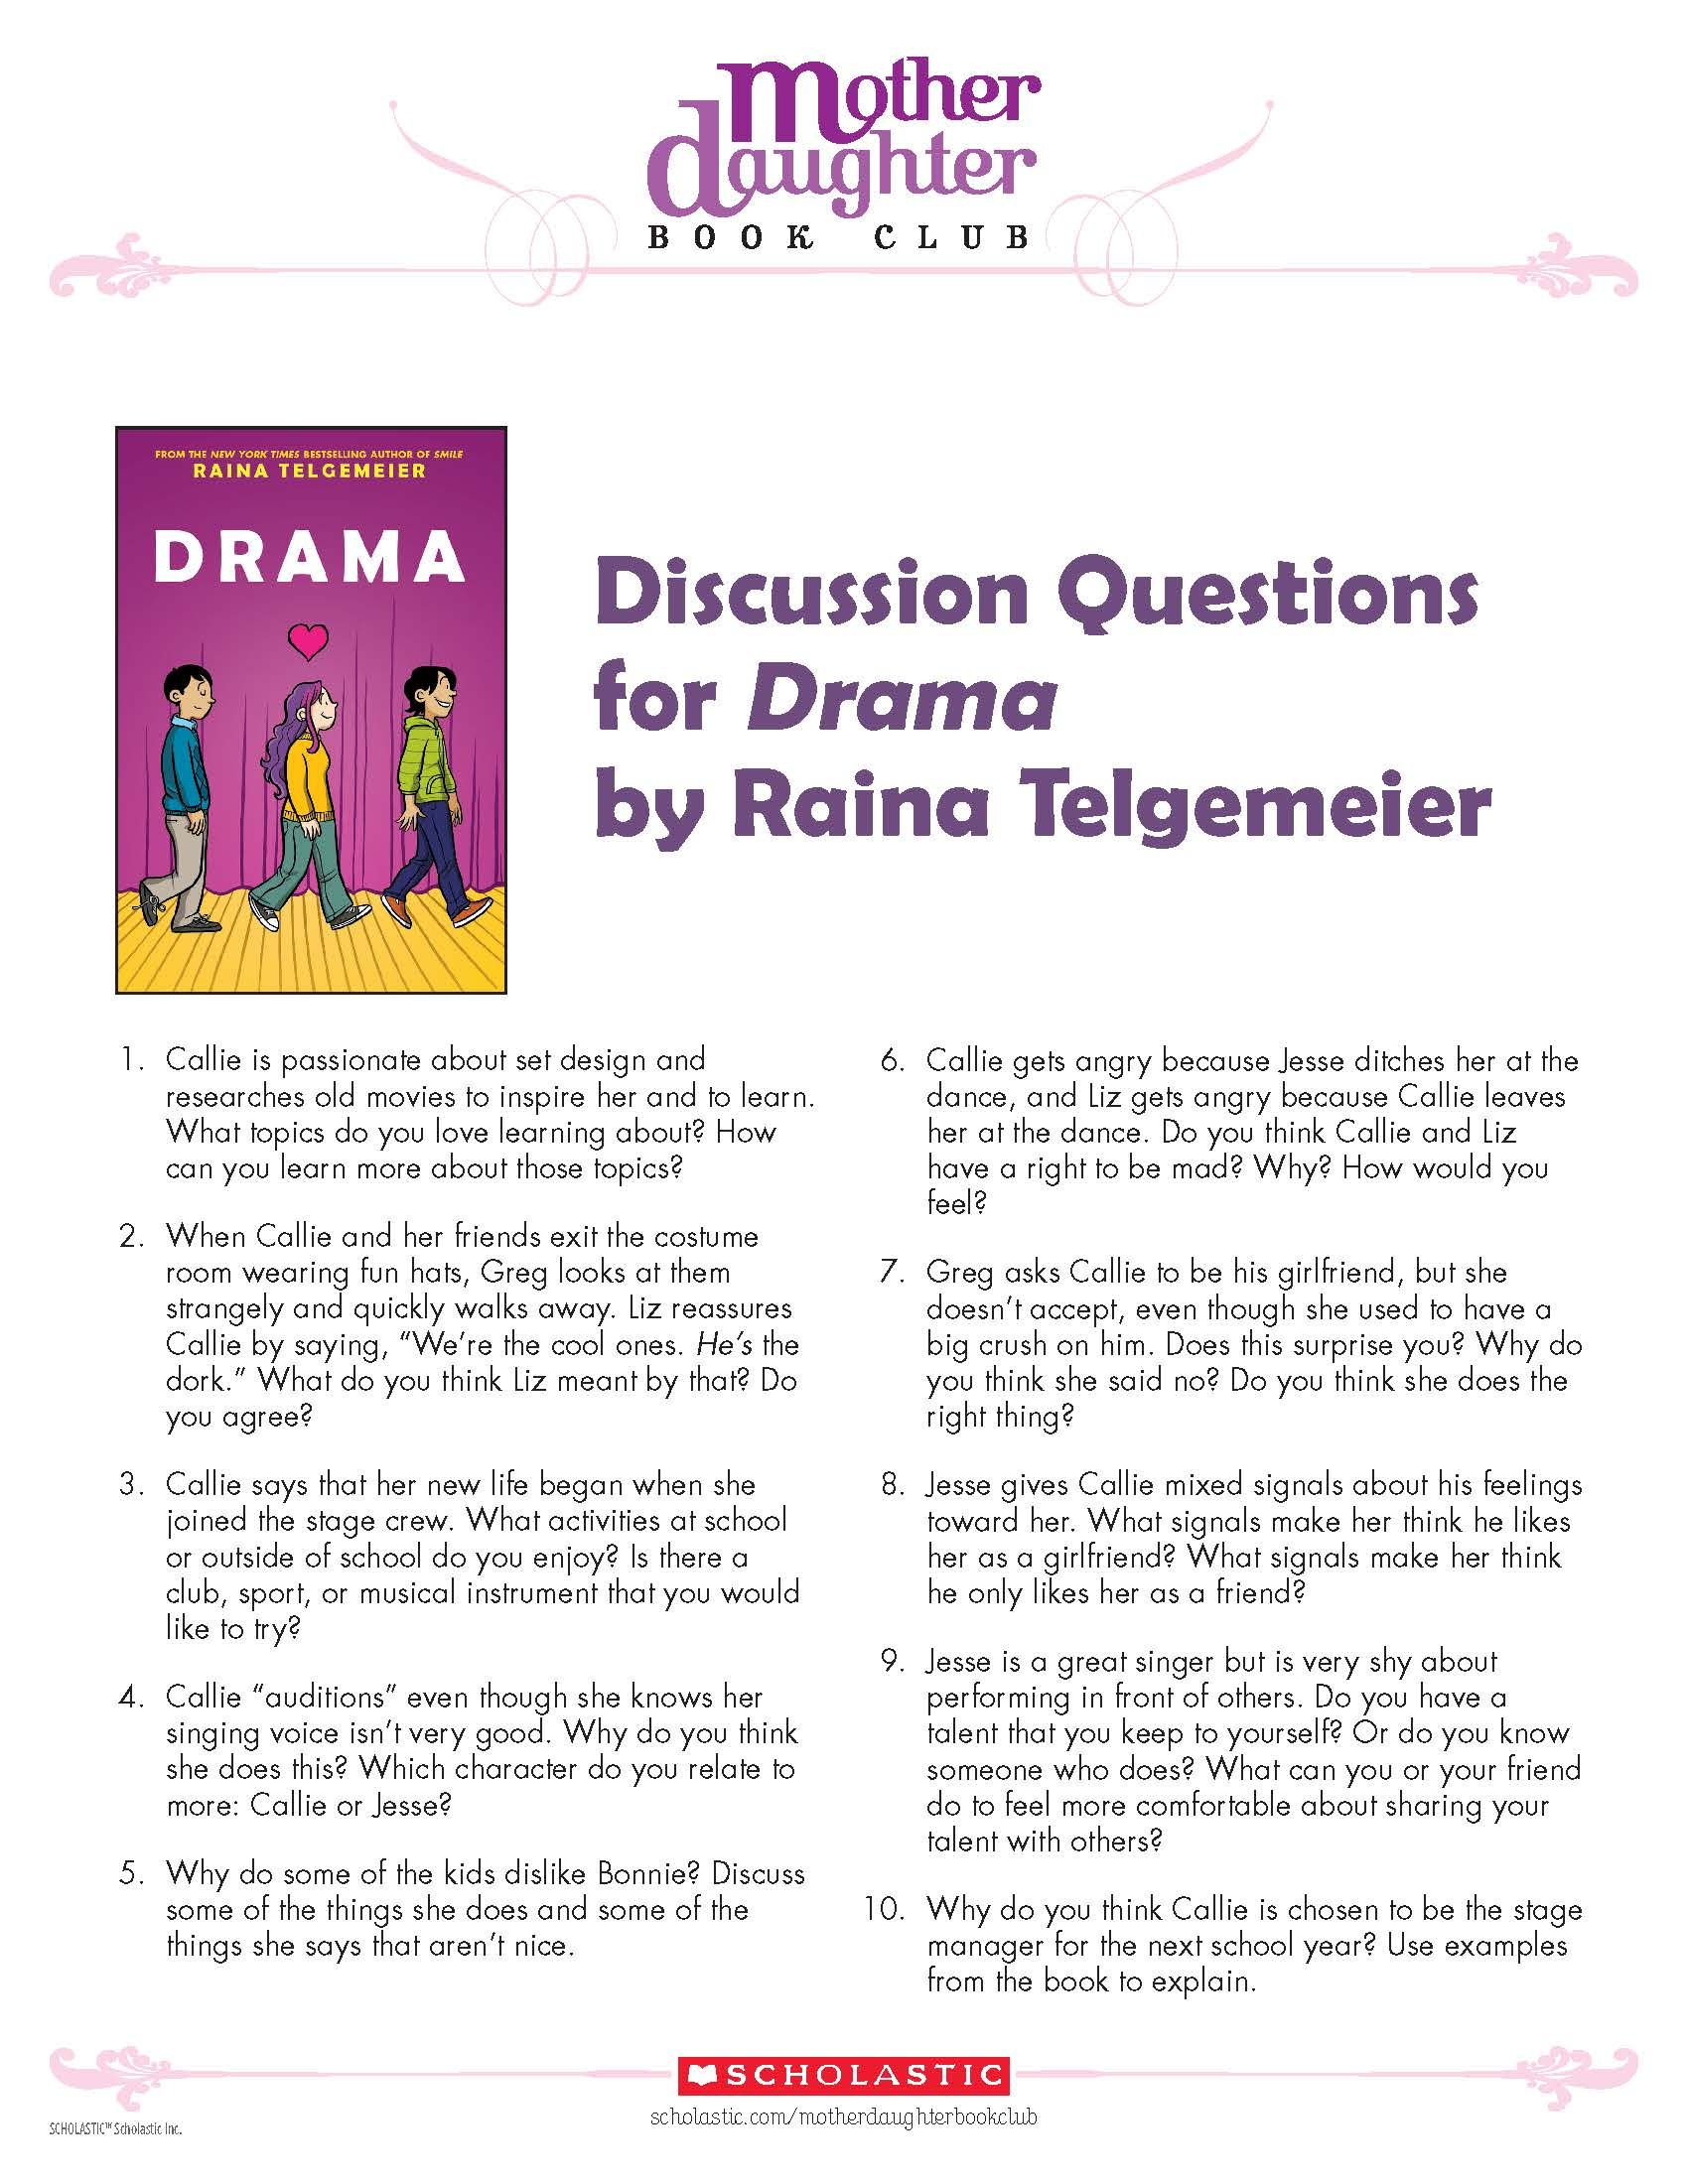 Discussion Questions For Drama By Raina Telgemeier